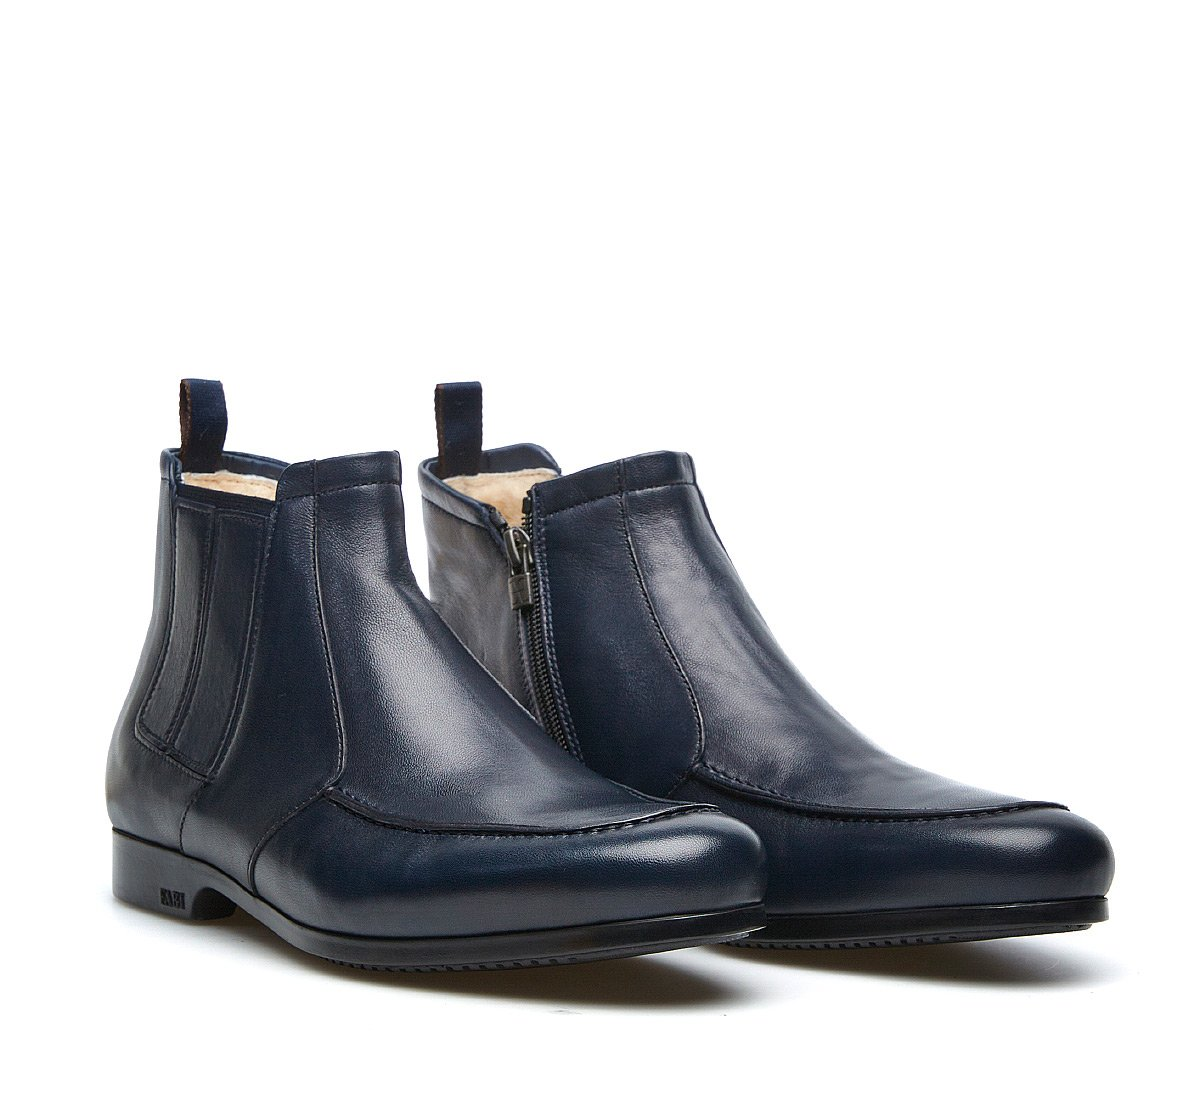 Beatle boots in soft nappa leather